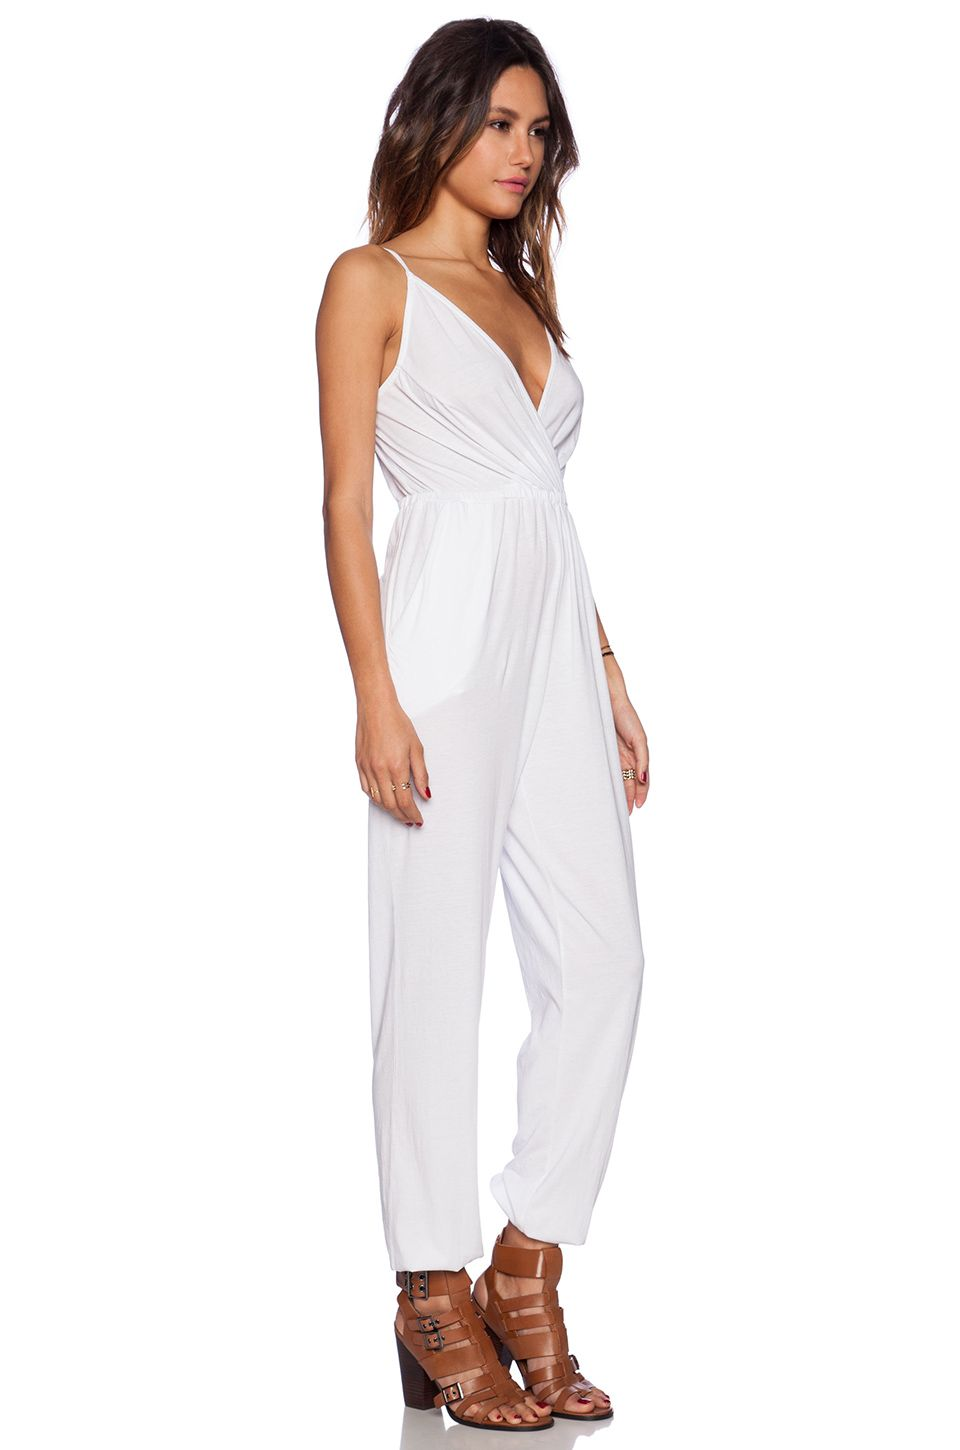 00cd7bc4251 Bobi Modal Jersey Drape Front Jumpsuit in White